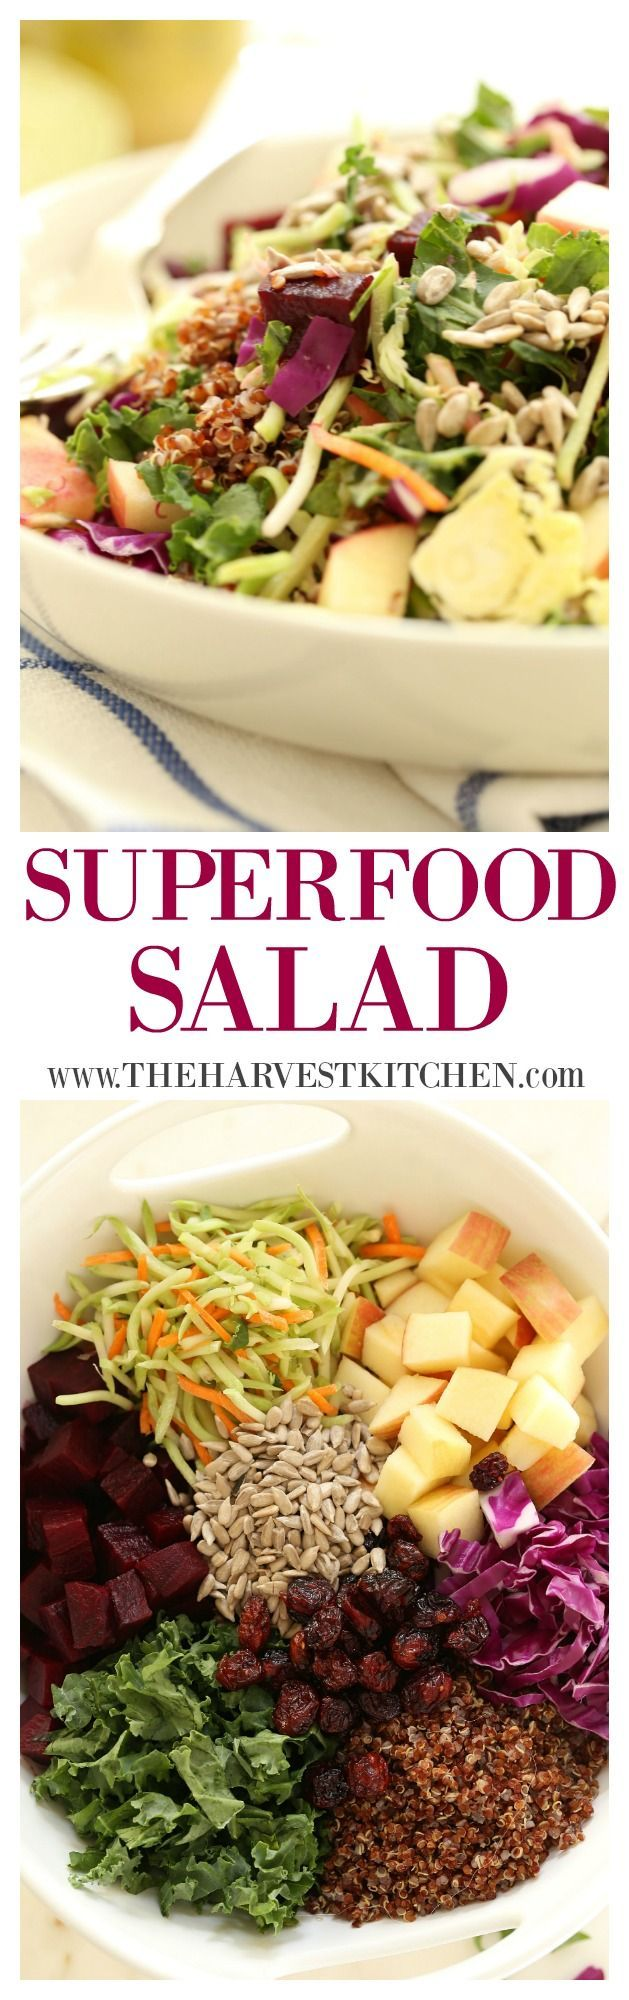 This Superfood Salad is loaded with curly kale, crunchy broccoli slaw, cabbage, shaved brussel sprouts, apples and sunflower seeds, as well as protein-dense quinoa, small bites of beets and chewy dried cranberries. It's all tossed in a delicious Honey Lime Vinaigrette. Healthy recipes @theharvestkitchen.com